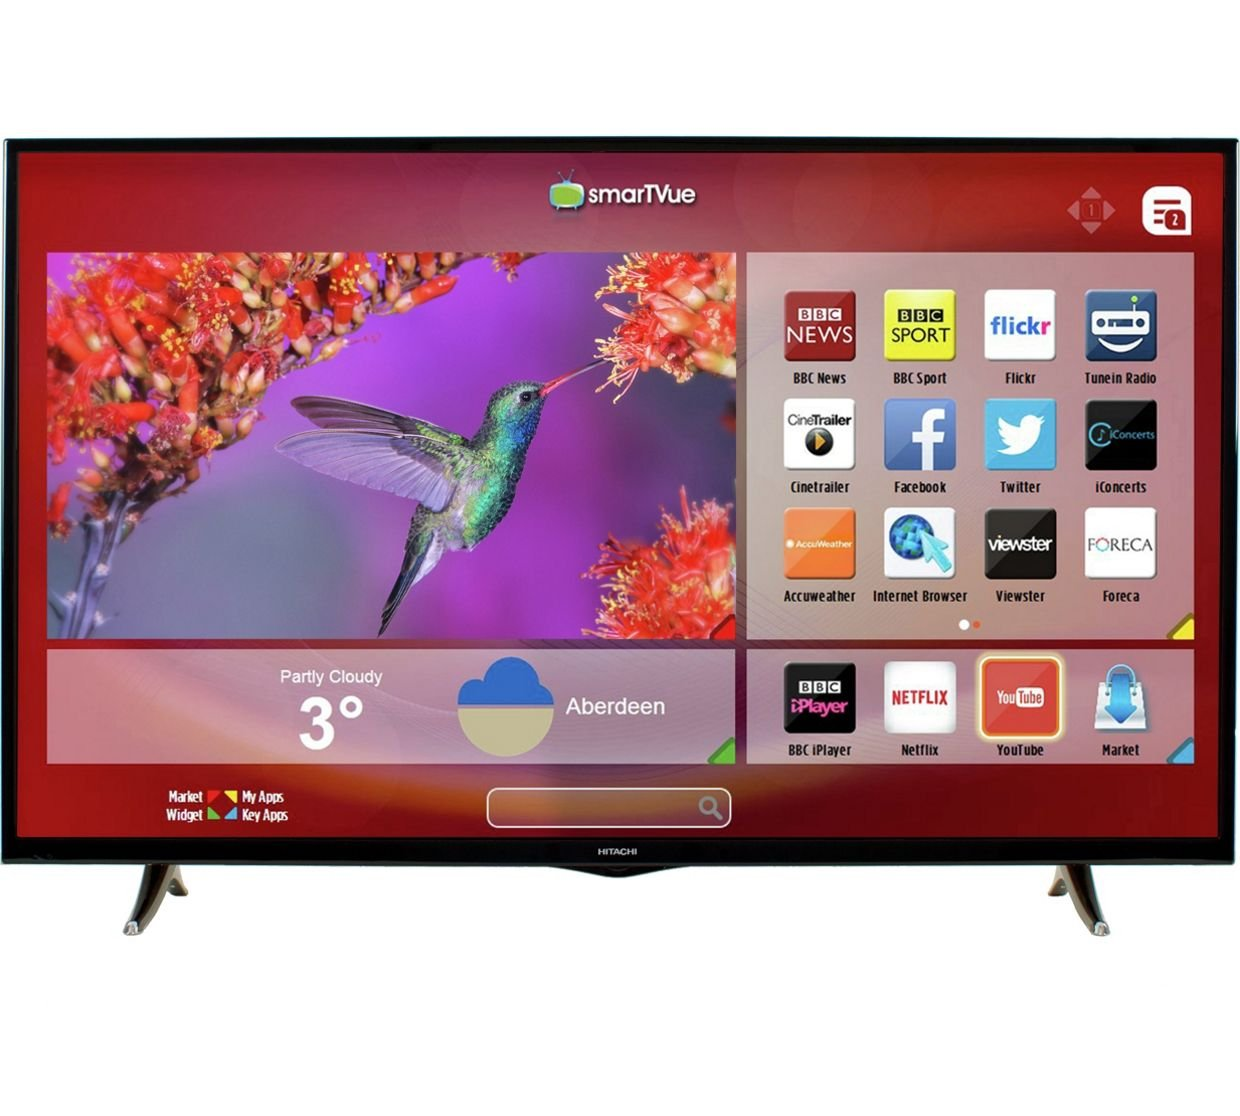 hitachi 40c301. hitachi tvs explained: everything you need to know about buying argos\u0027 exclusive tv brand | expert reviews 40c301